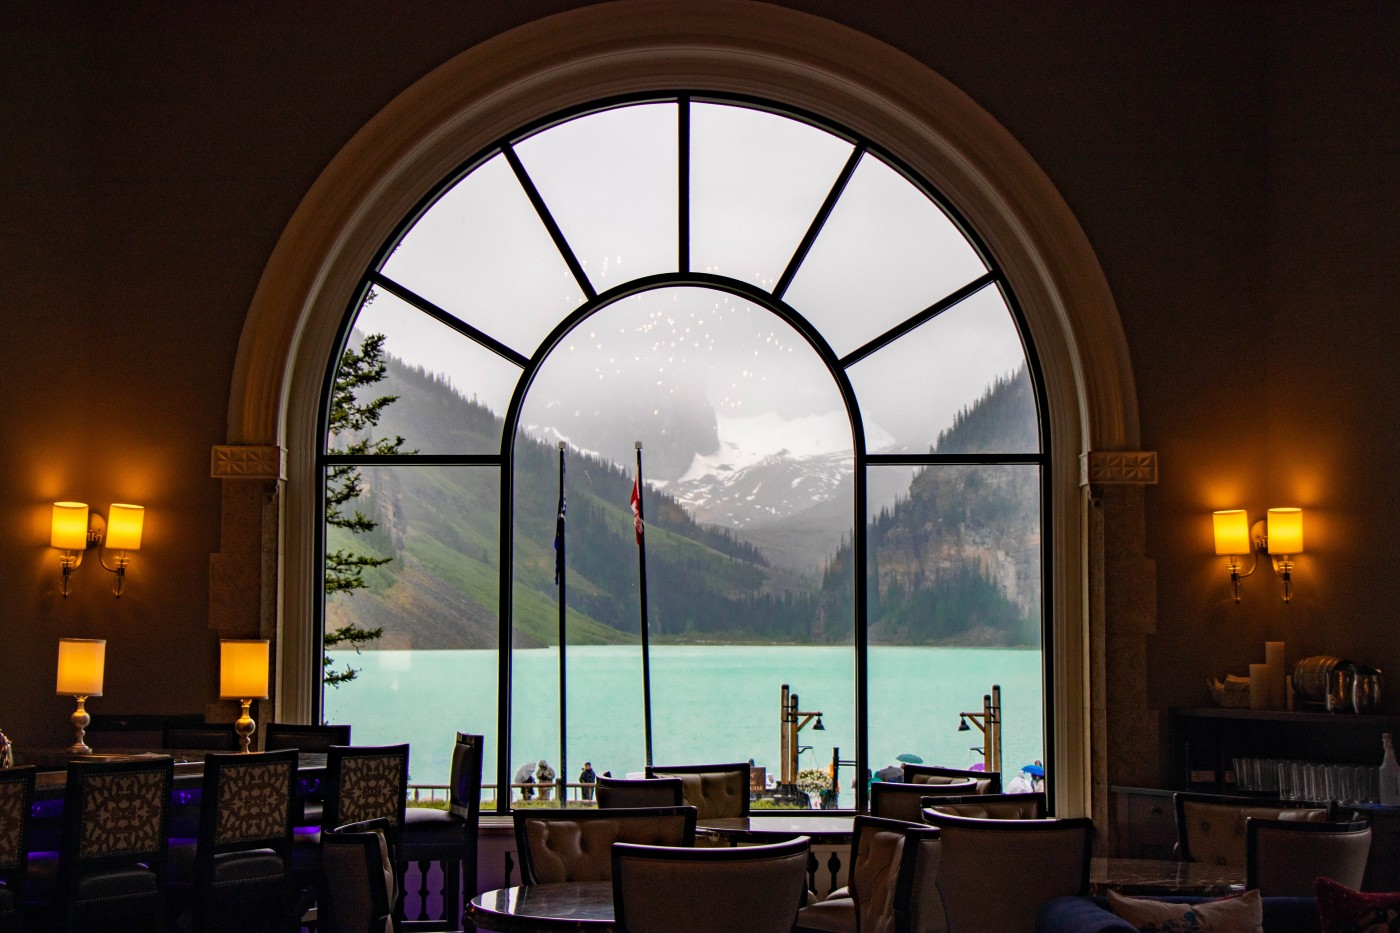 Fairmont Lake Louise | Top 10 Photography Spots in Banff National Park